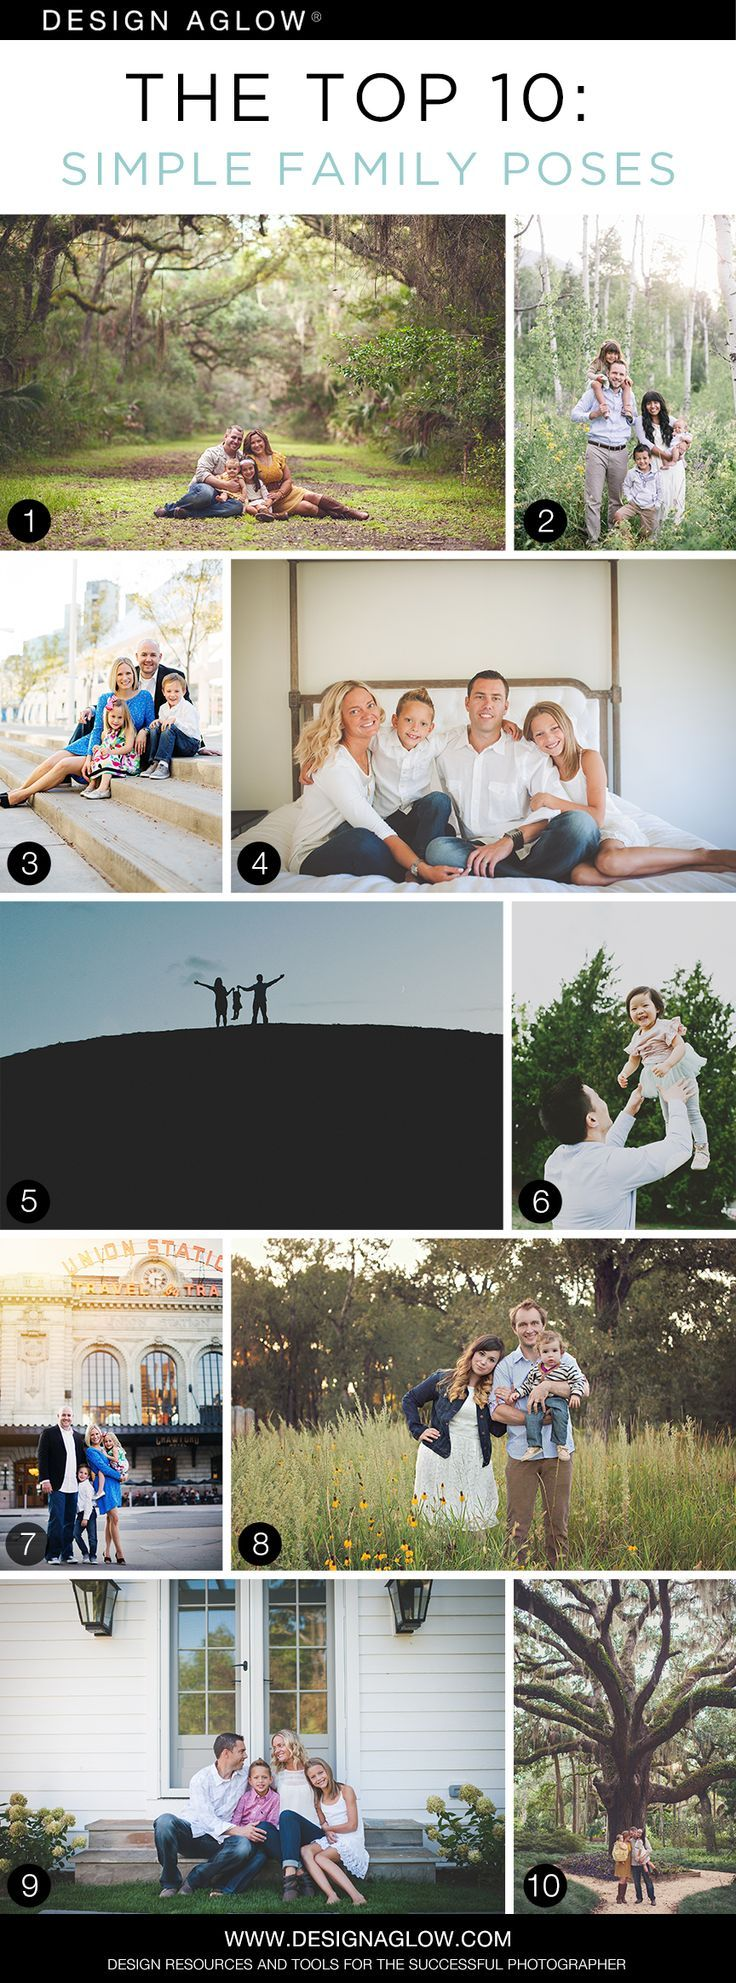 The Top 10: Simple Family Poses #designaglow